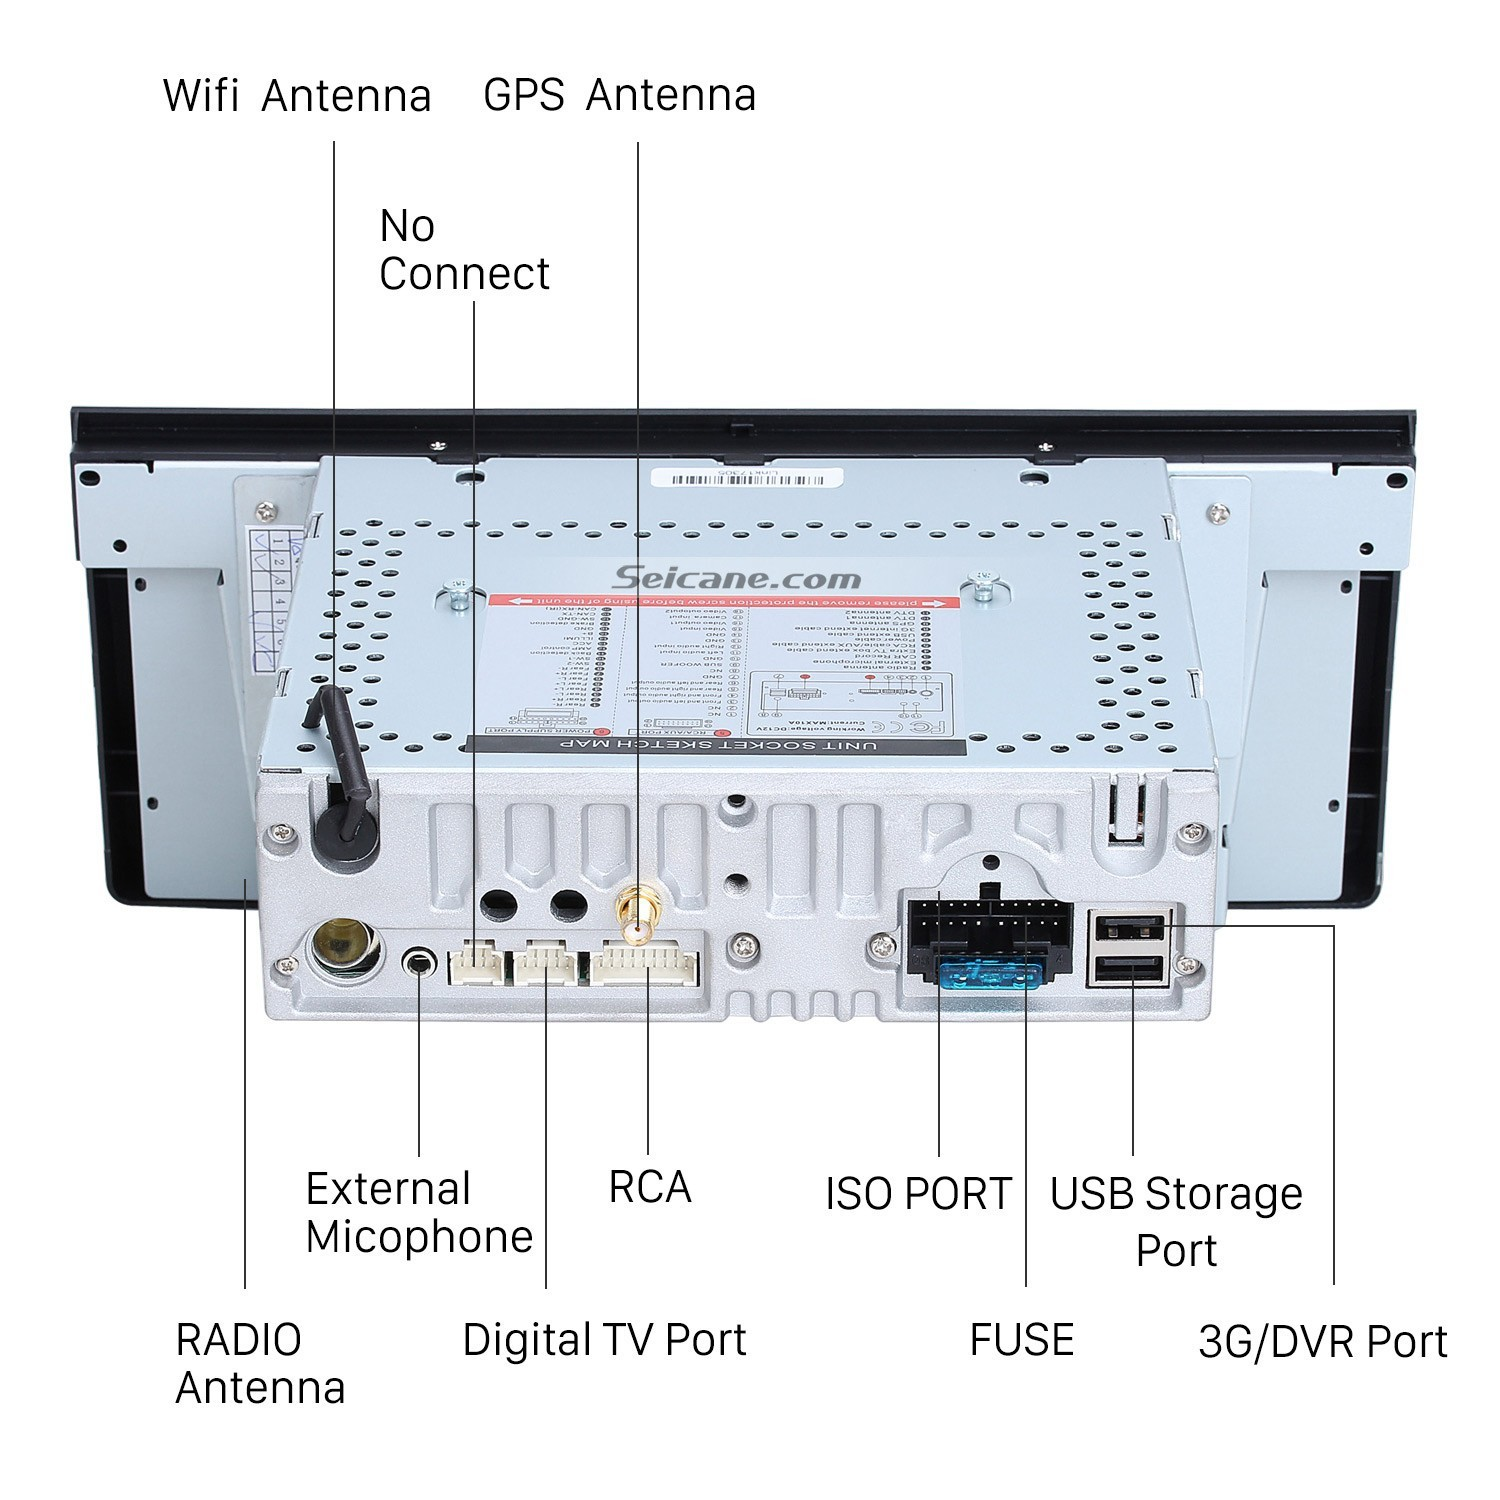 Wiring Diagram for Clarion Car Stereo New Stereo Wiring Diagram Diagram Of Wiring Diagram for Clarion Car Stereo